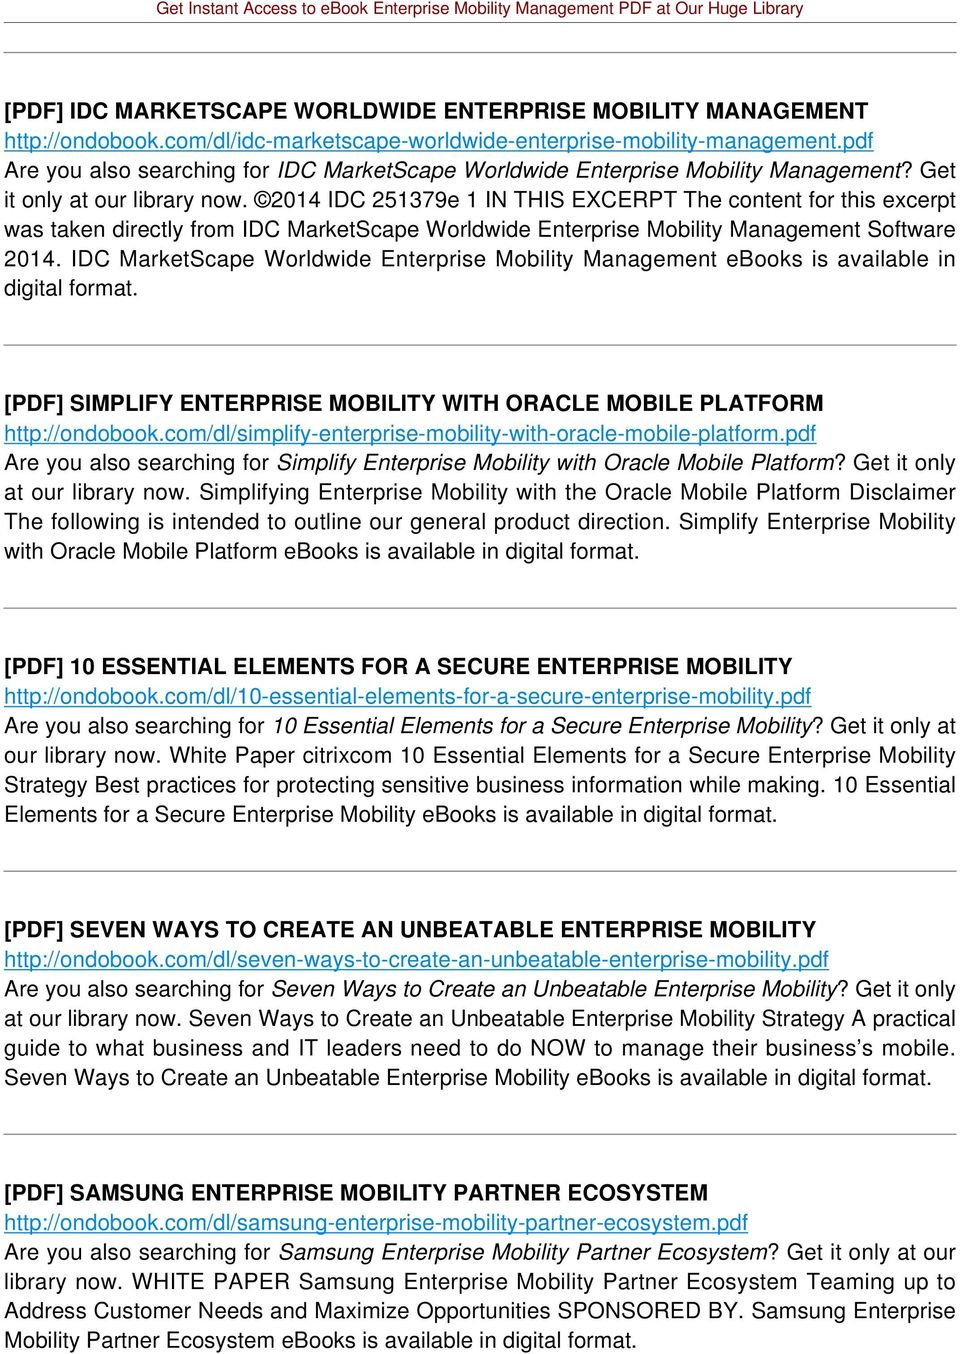 2014 IDC 251379e 1 IN THIS EXCERPT The content for this excerpt was taken directly from IDC MarketScape Worldwide Enterprise Mobility Management Software 2014.